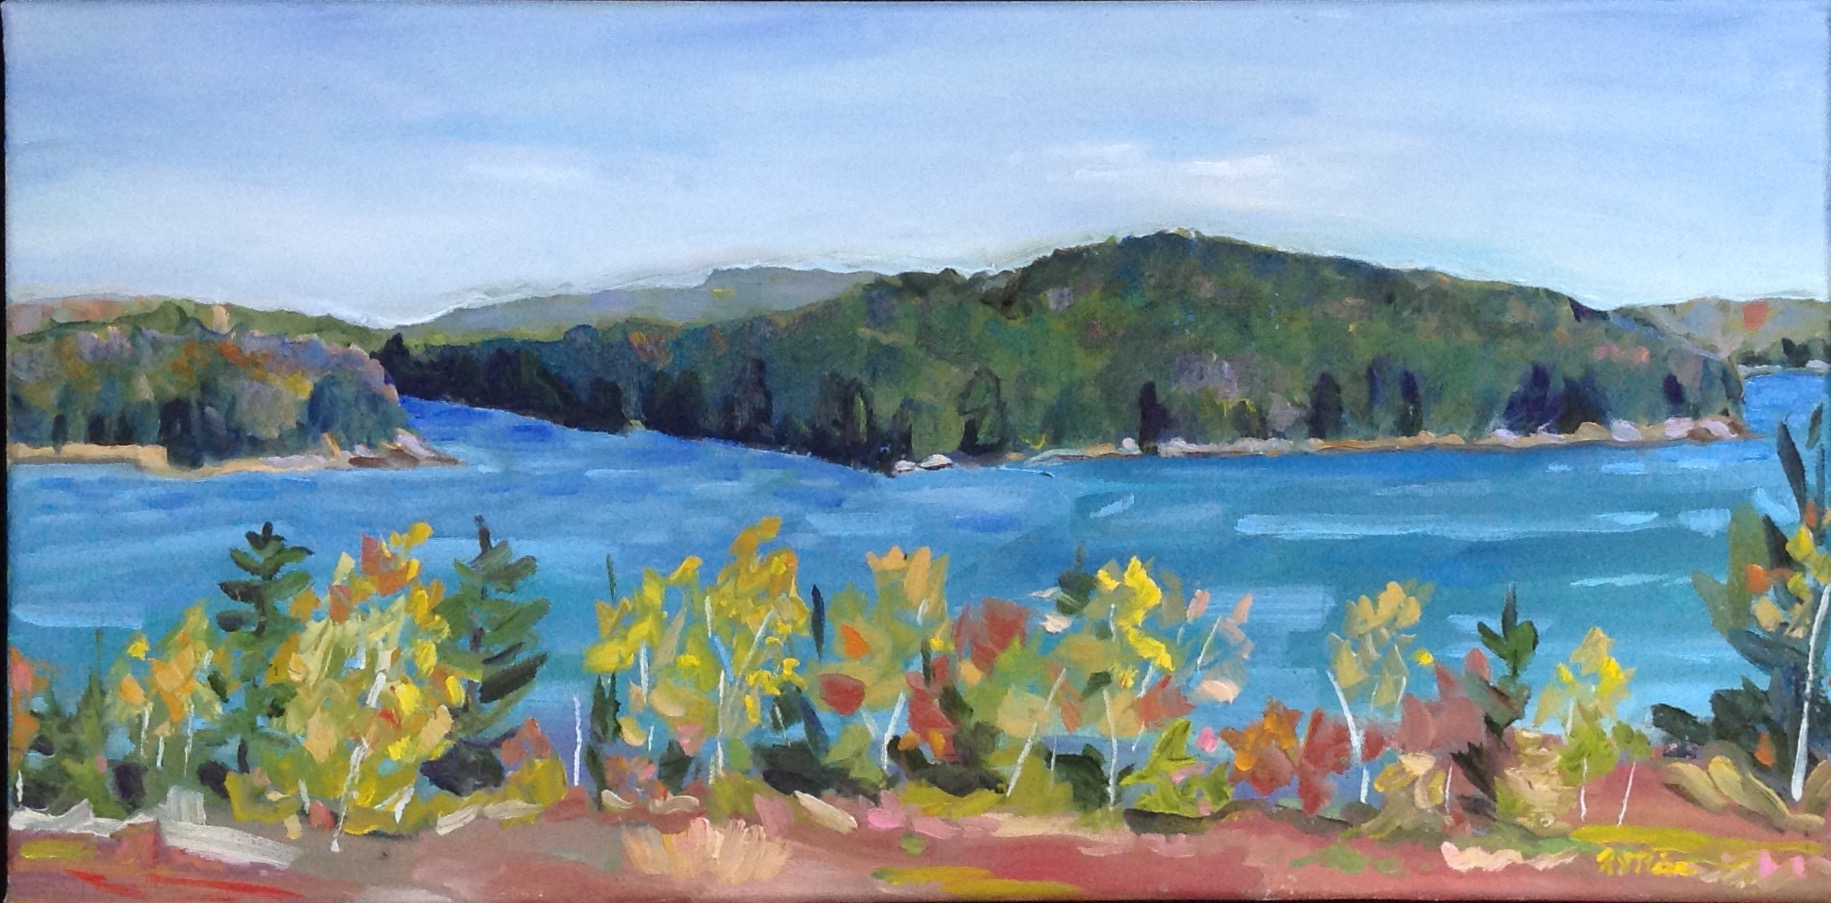 The Bay, Autumn, Barrens